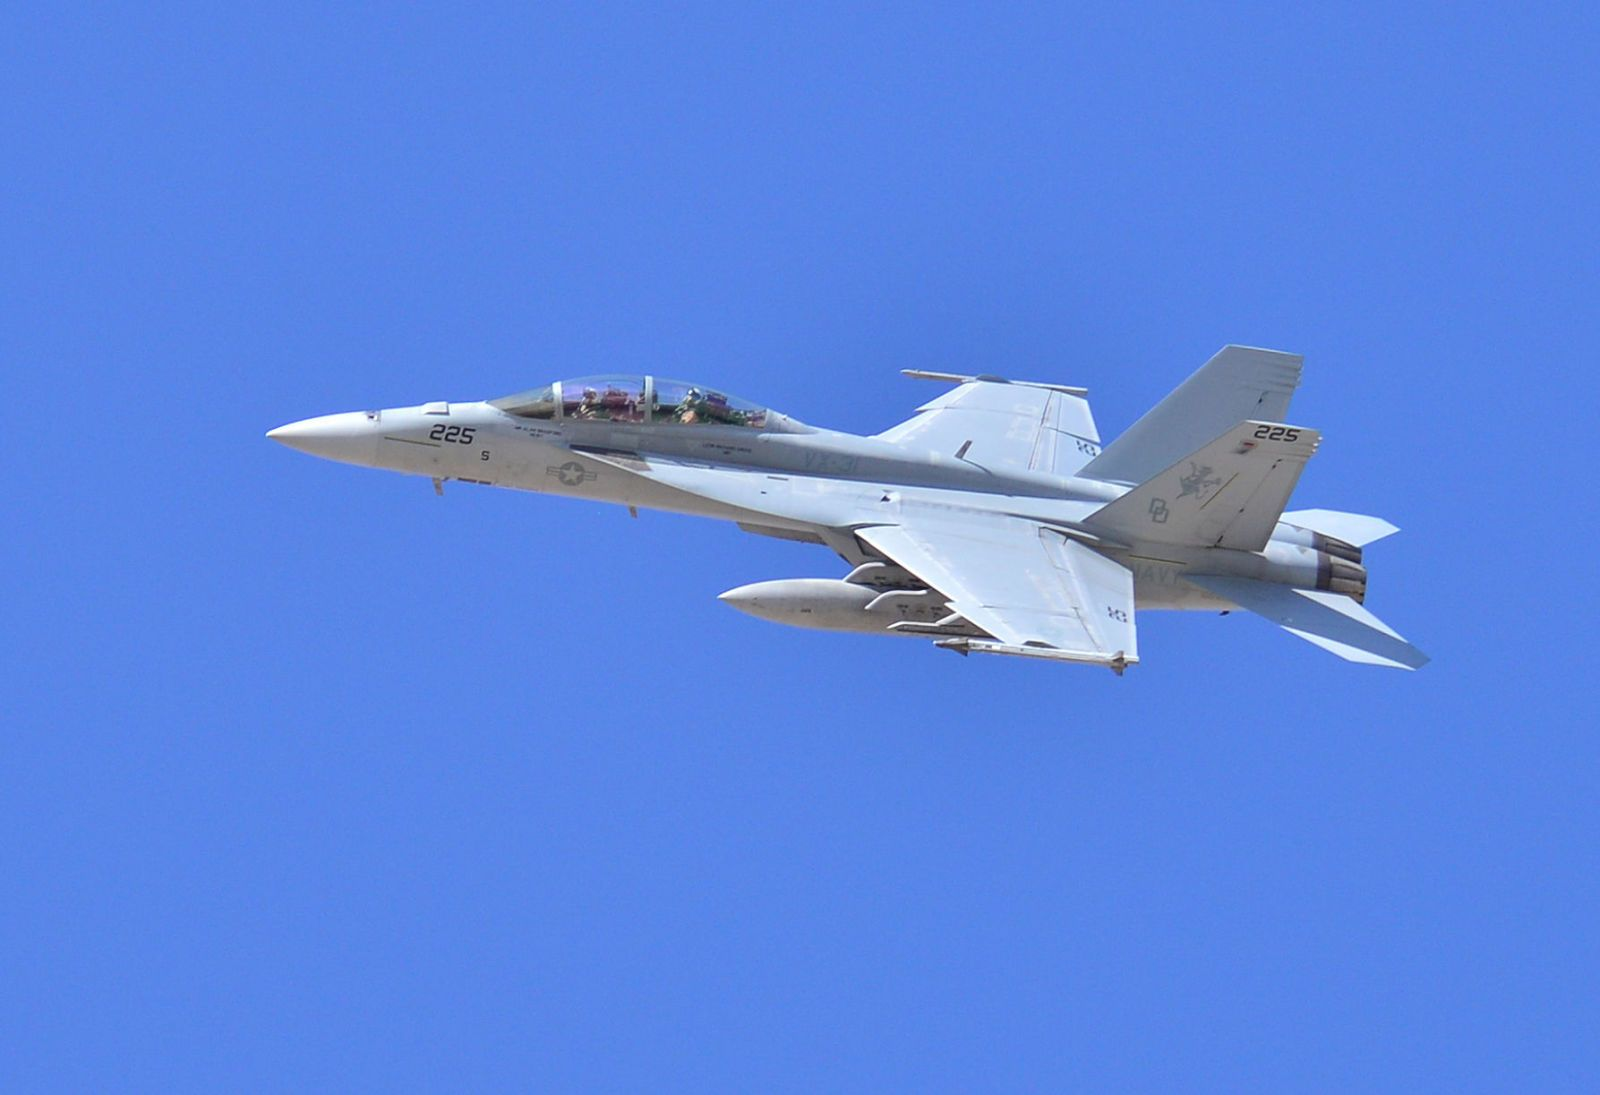 Canada Buys New F-18s After Canceling Its Order for the F-35